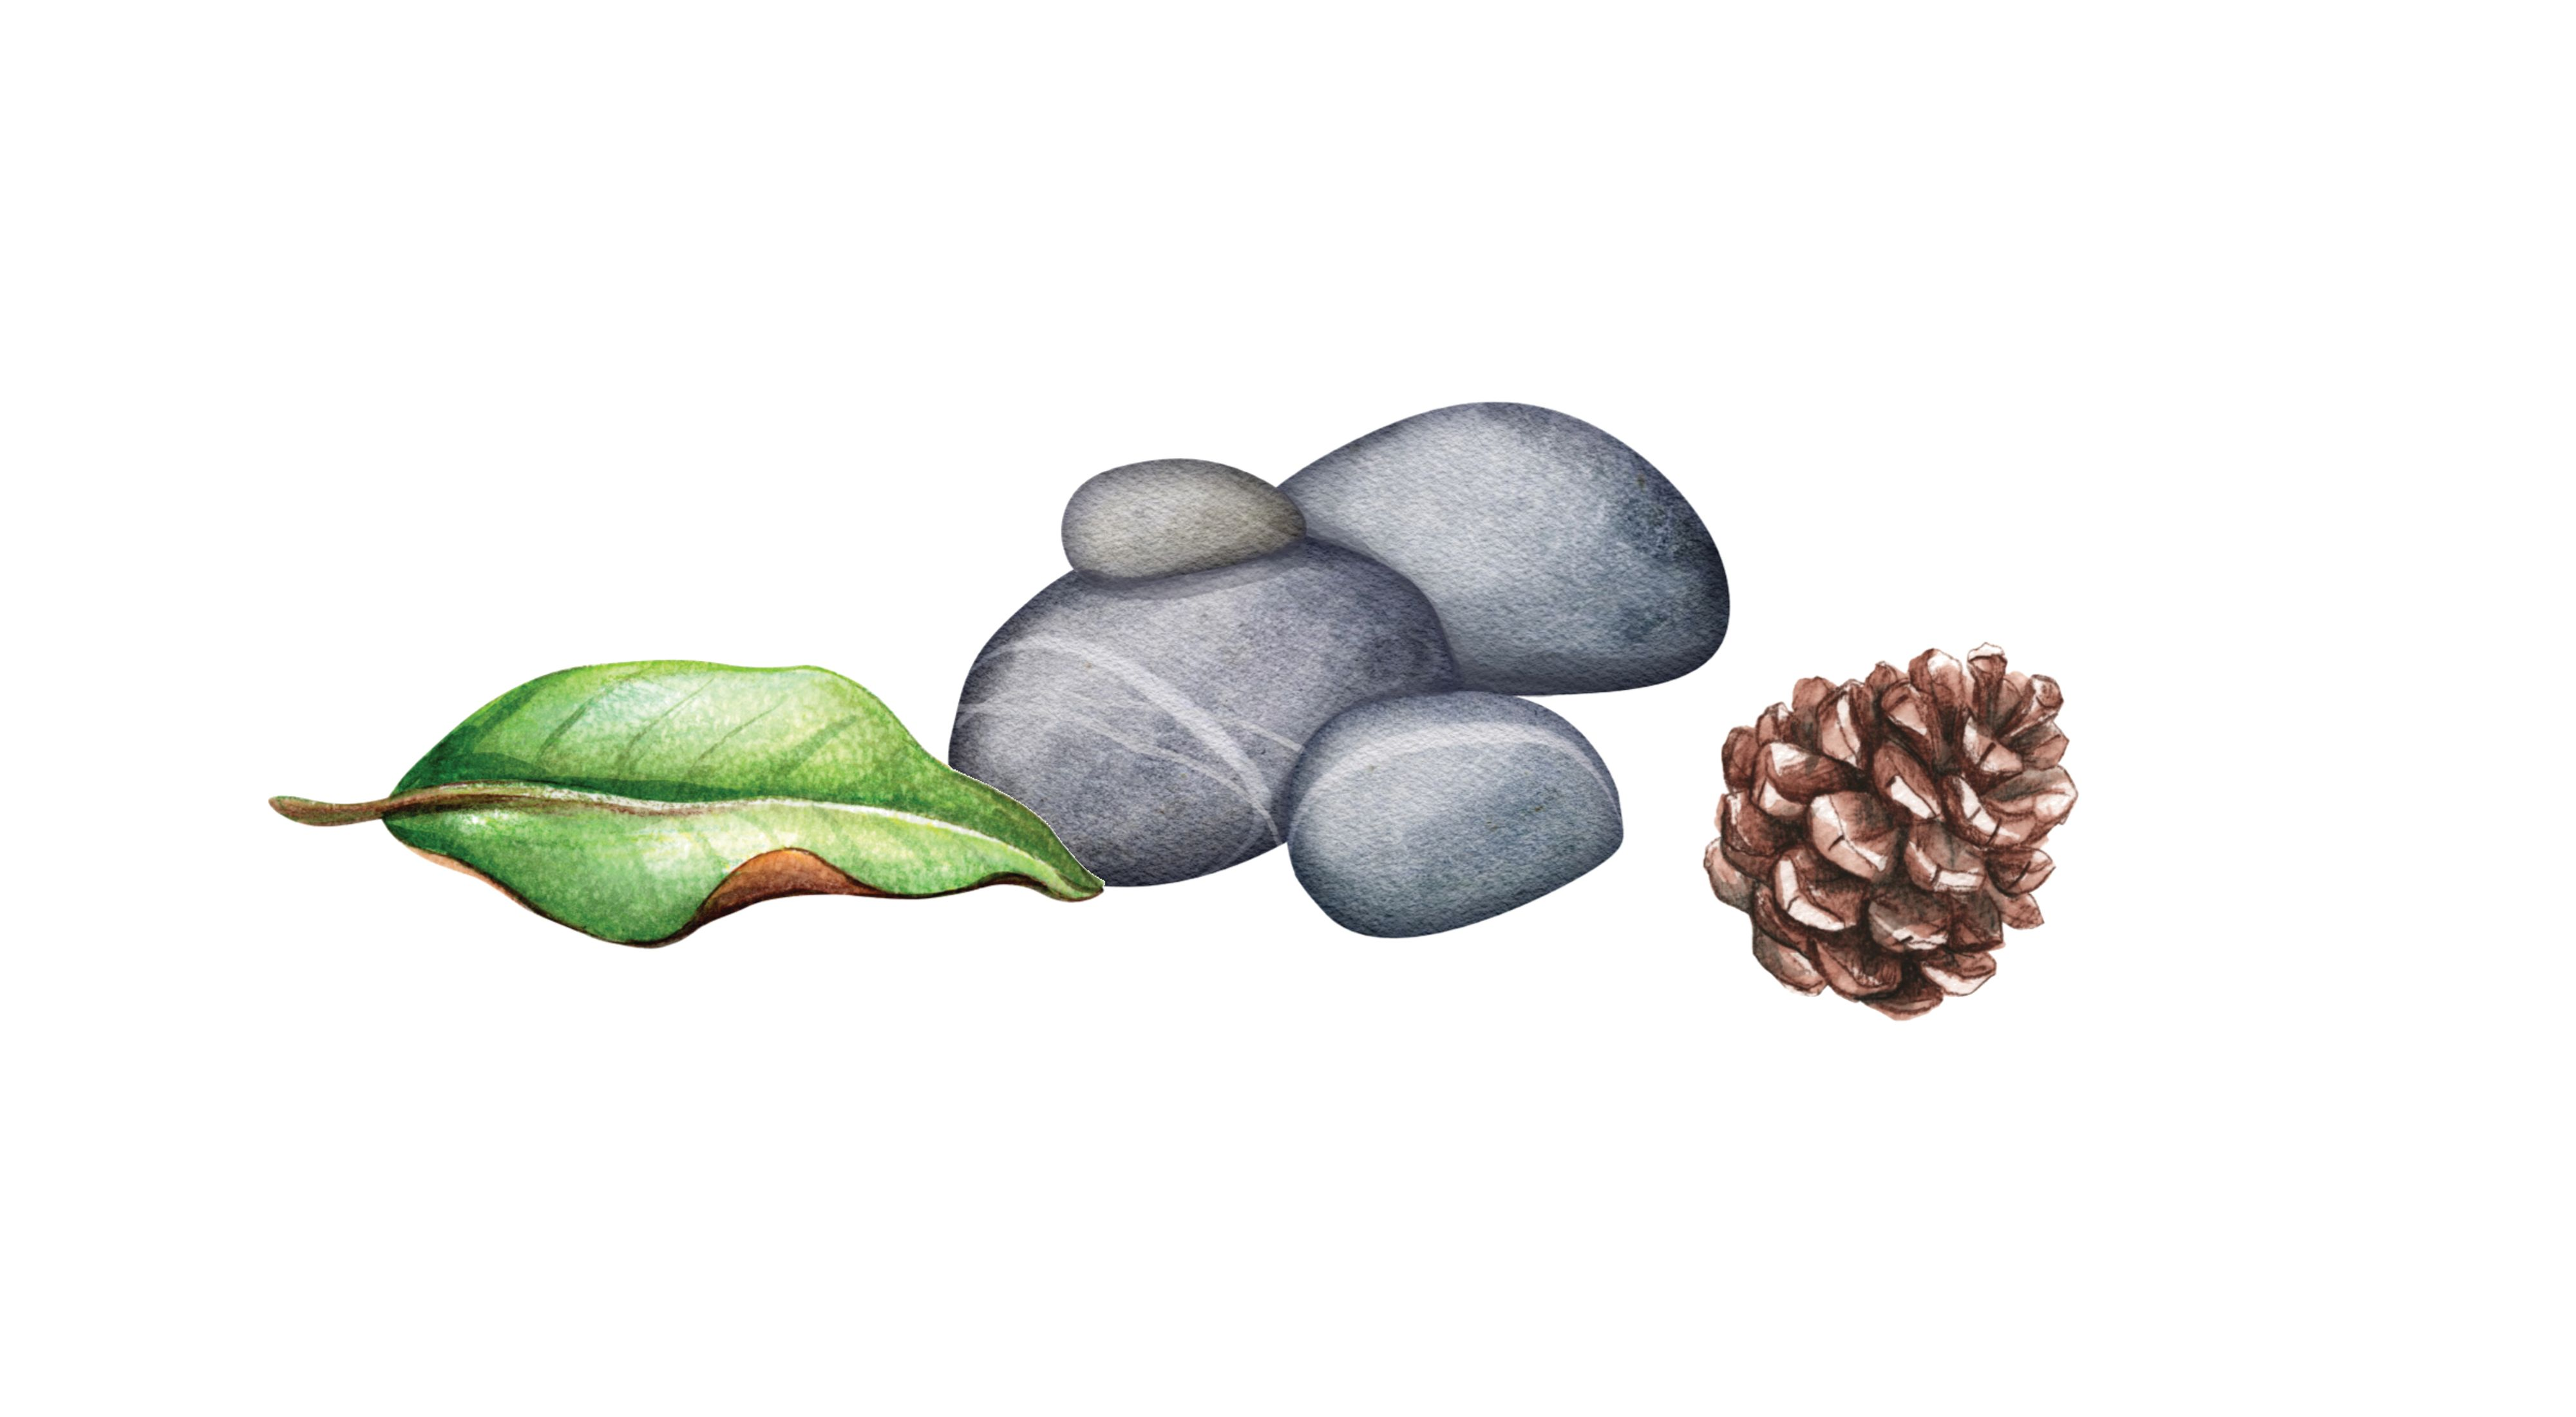 Watercolor illustration of a leaf, stones and a pinecone